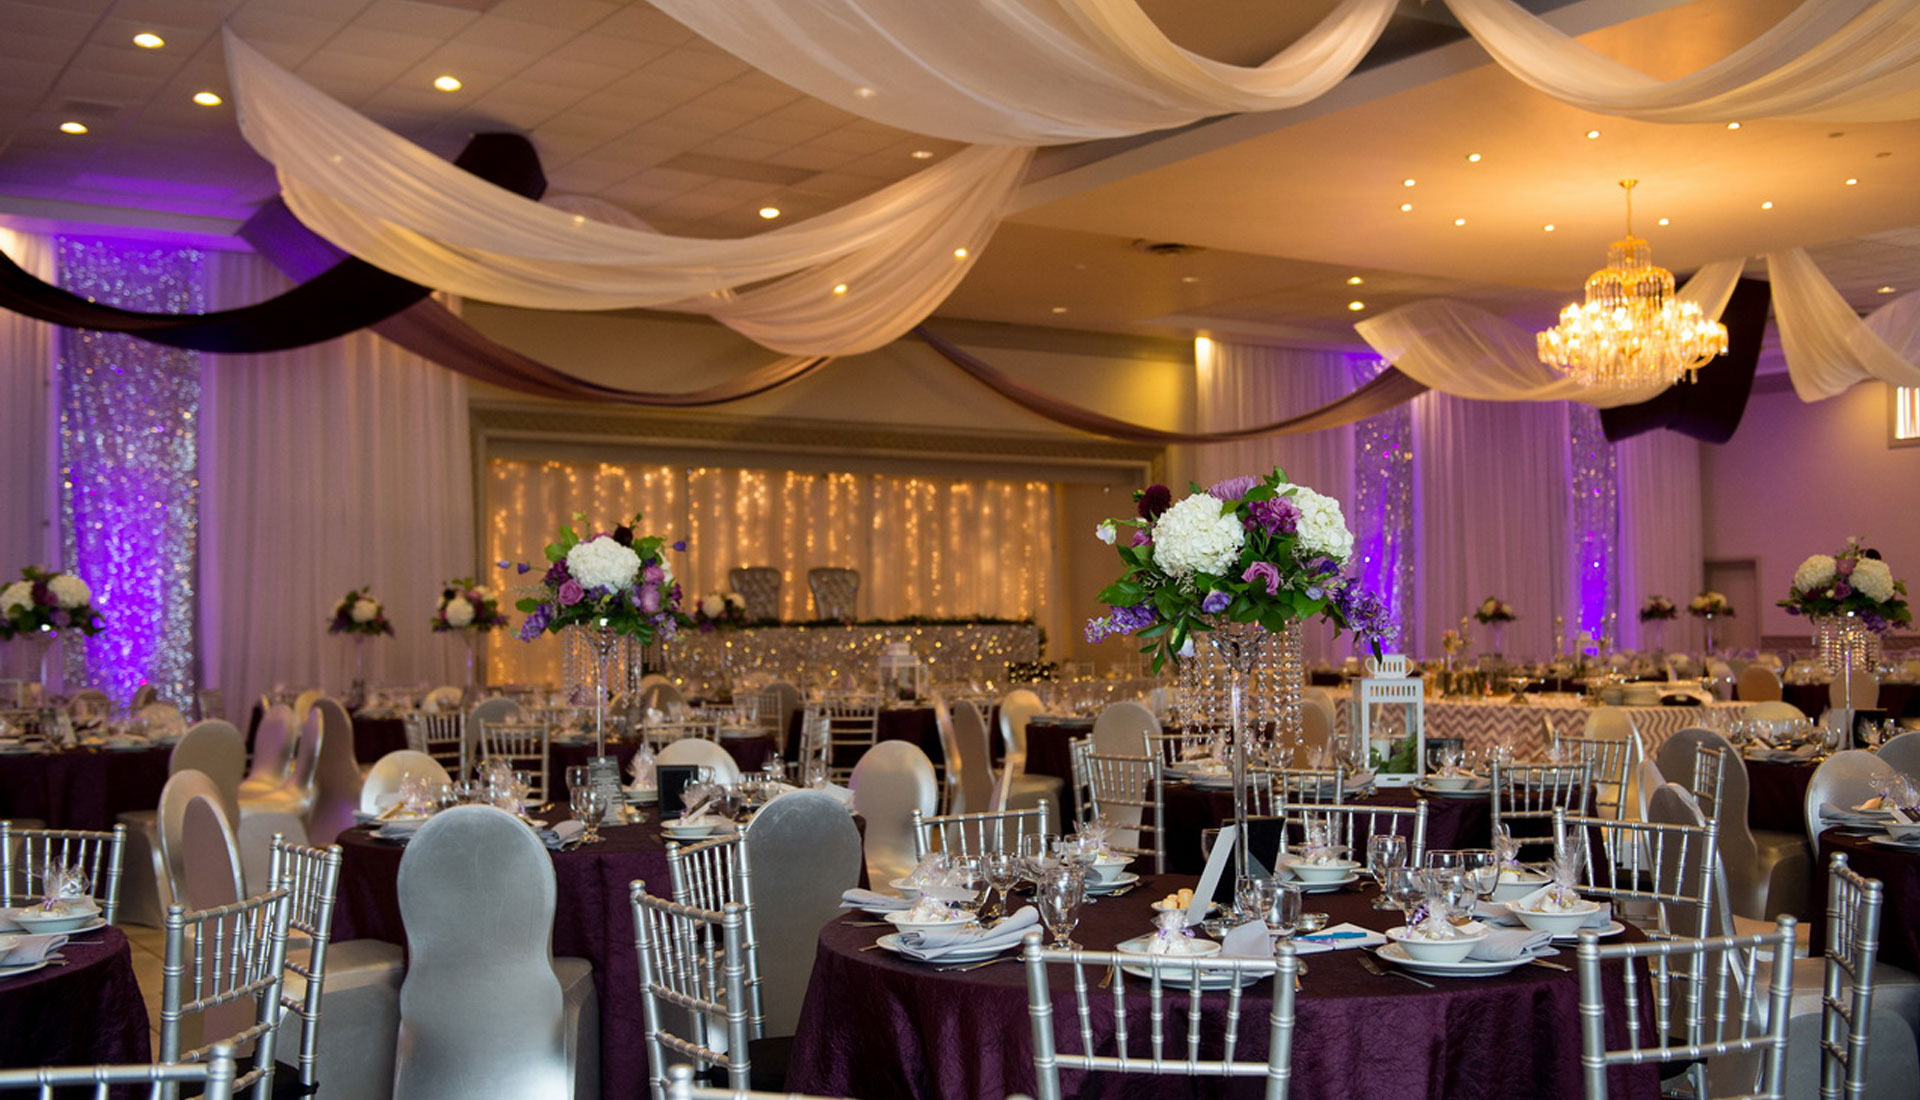 Wedding Decor Rentals Cambridge Ontario